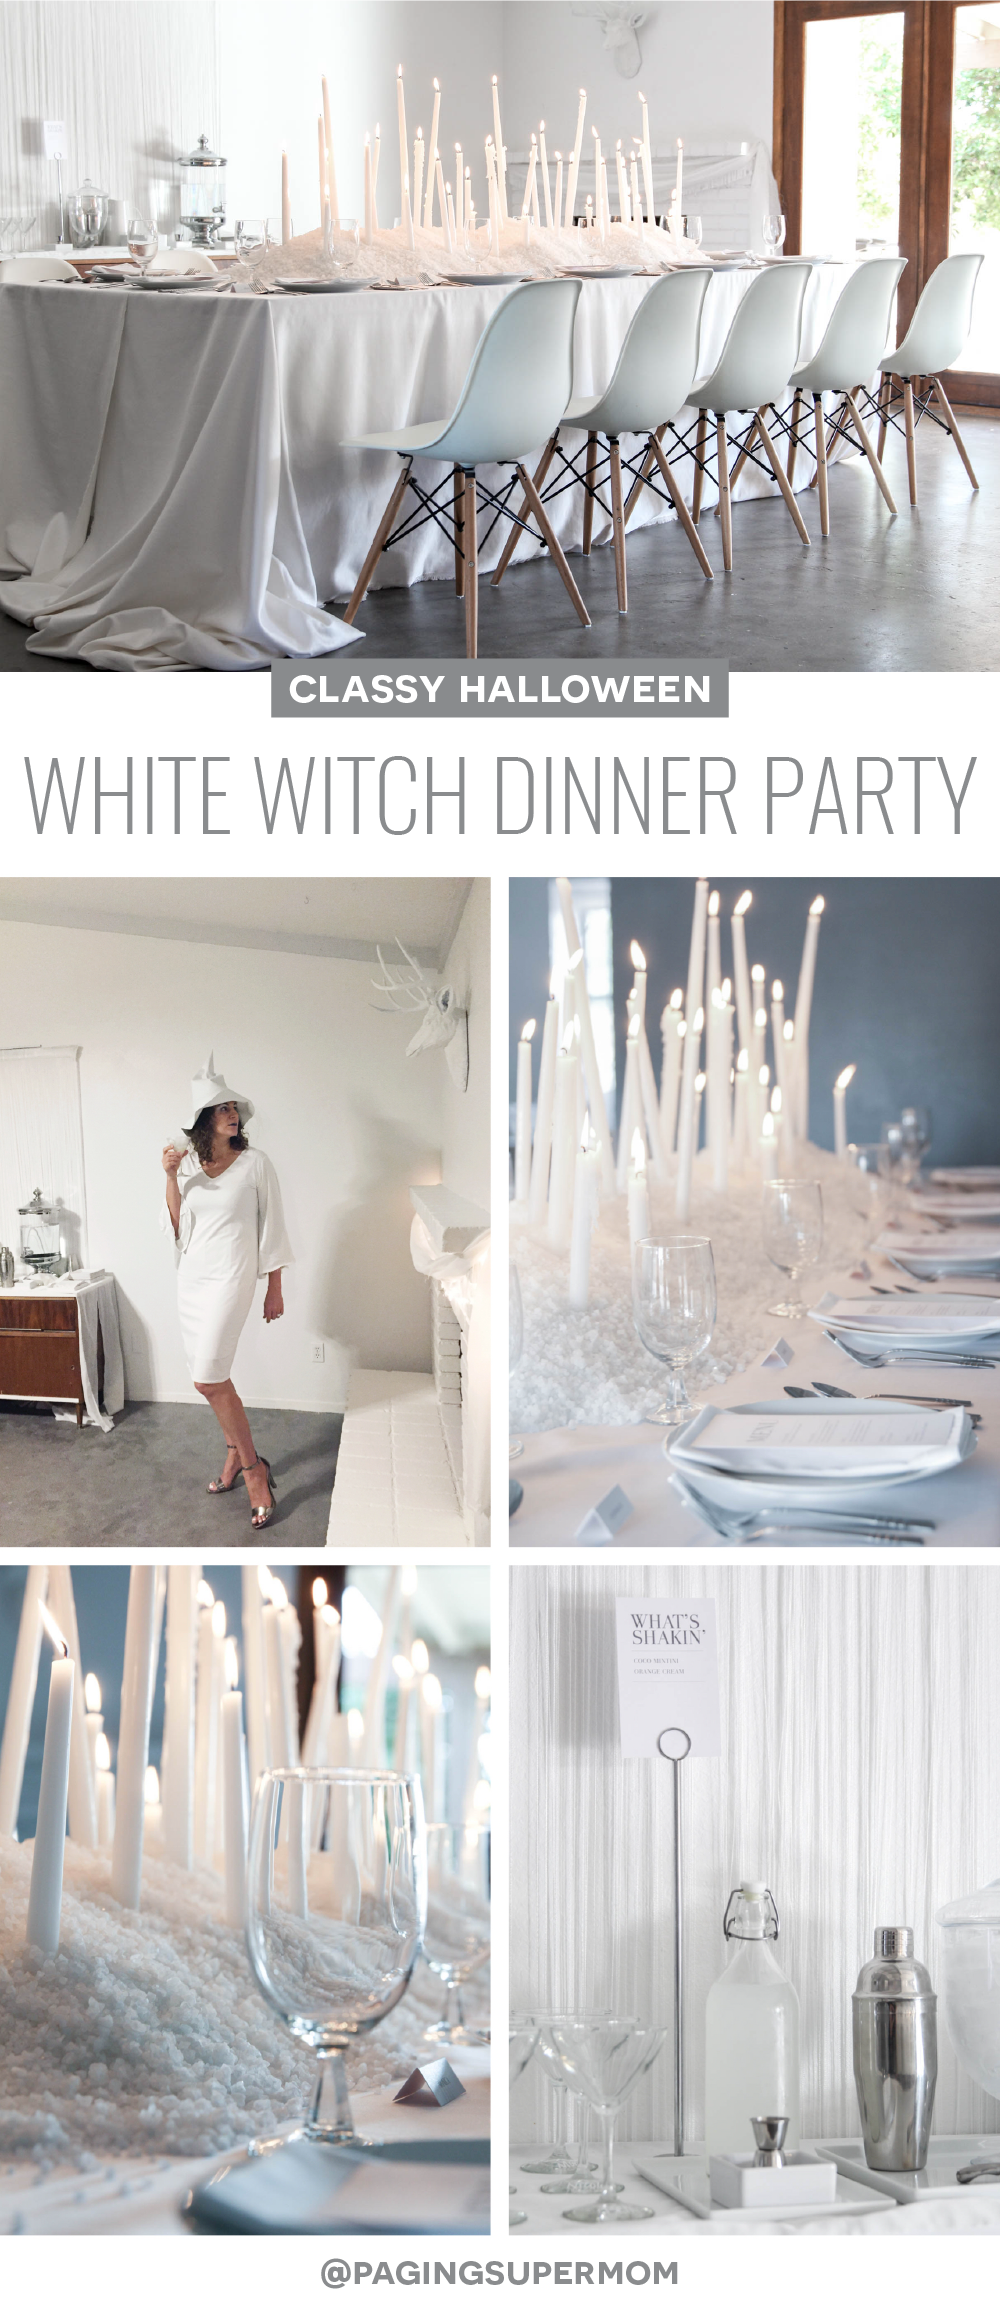 White Witch - An Elegant Halloween Party via @PagingSupermom